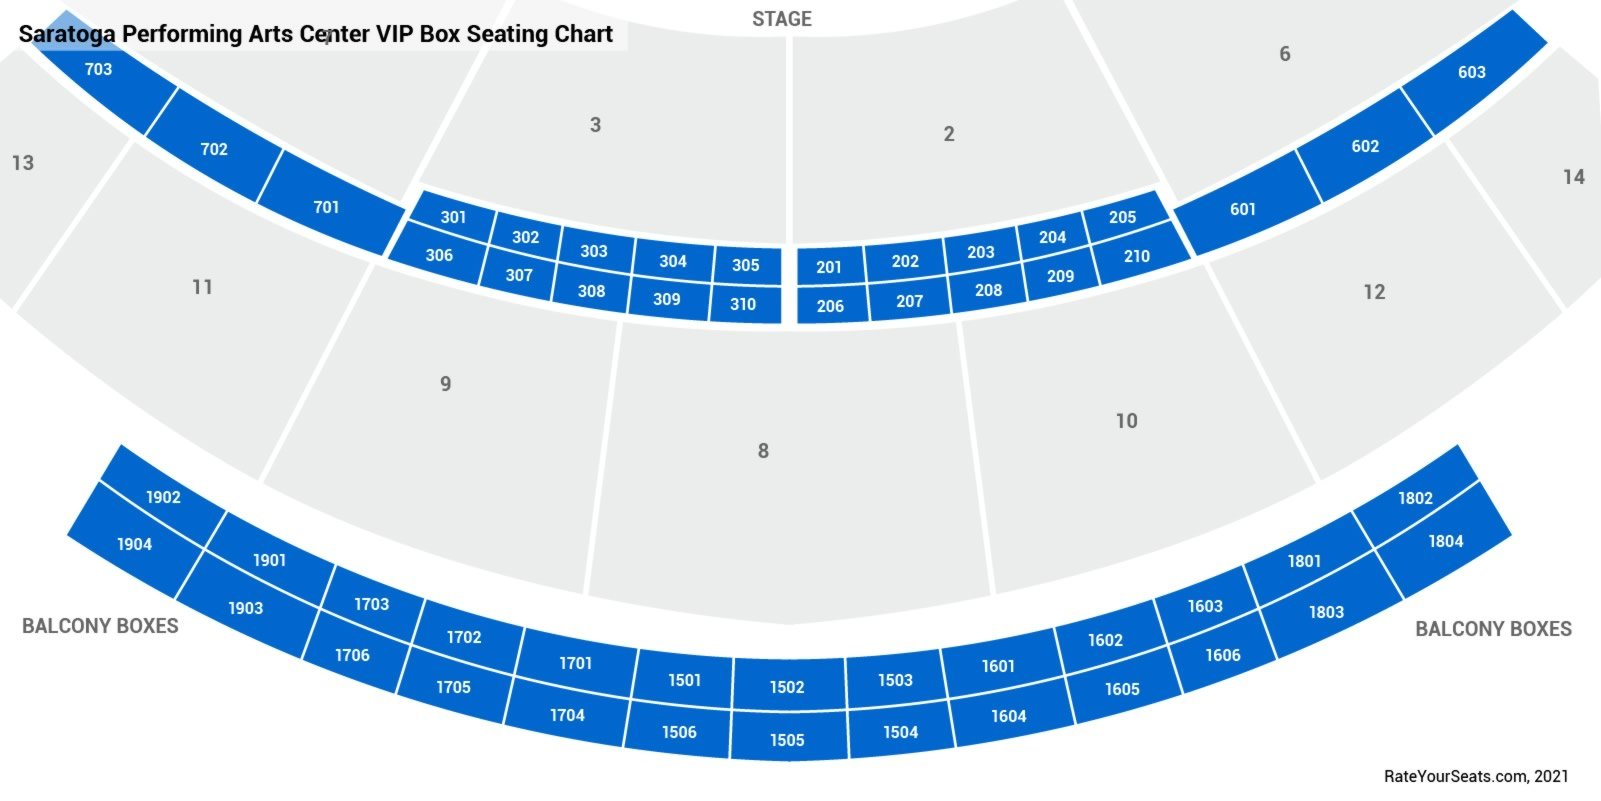 Saratoga performing arts center box seats rateyourseats com